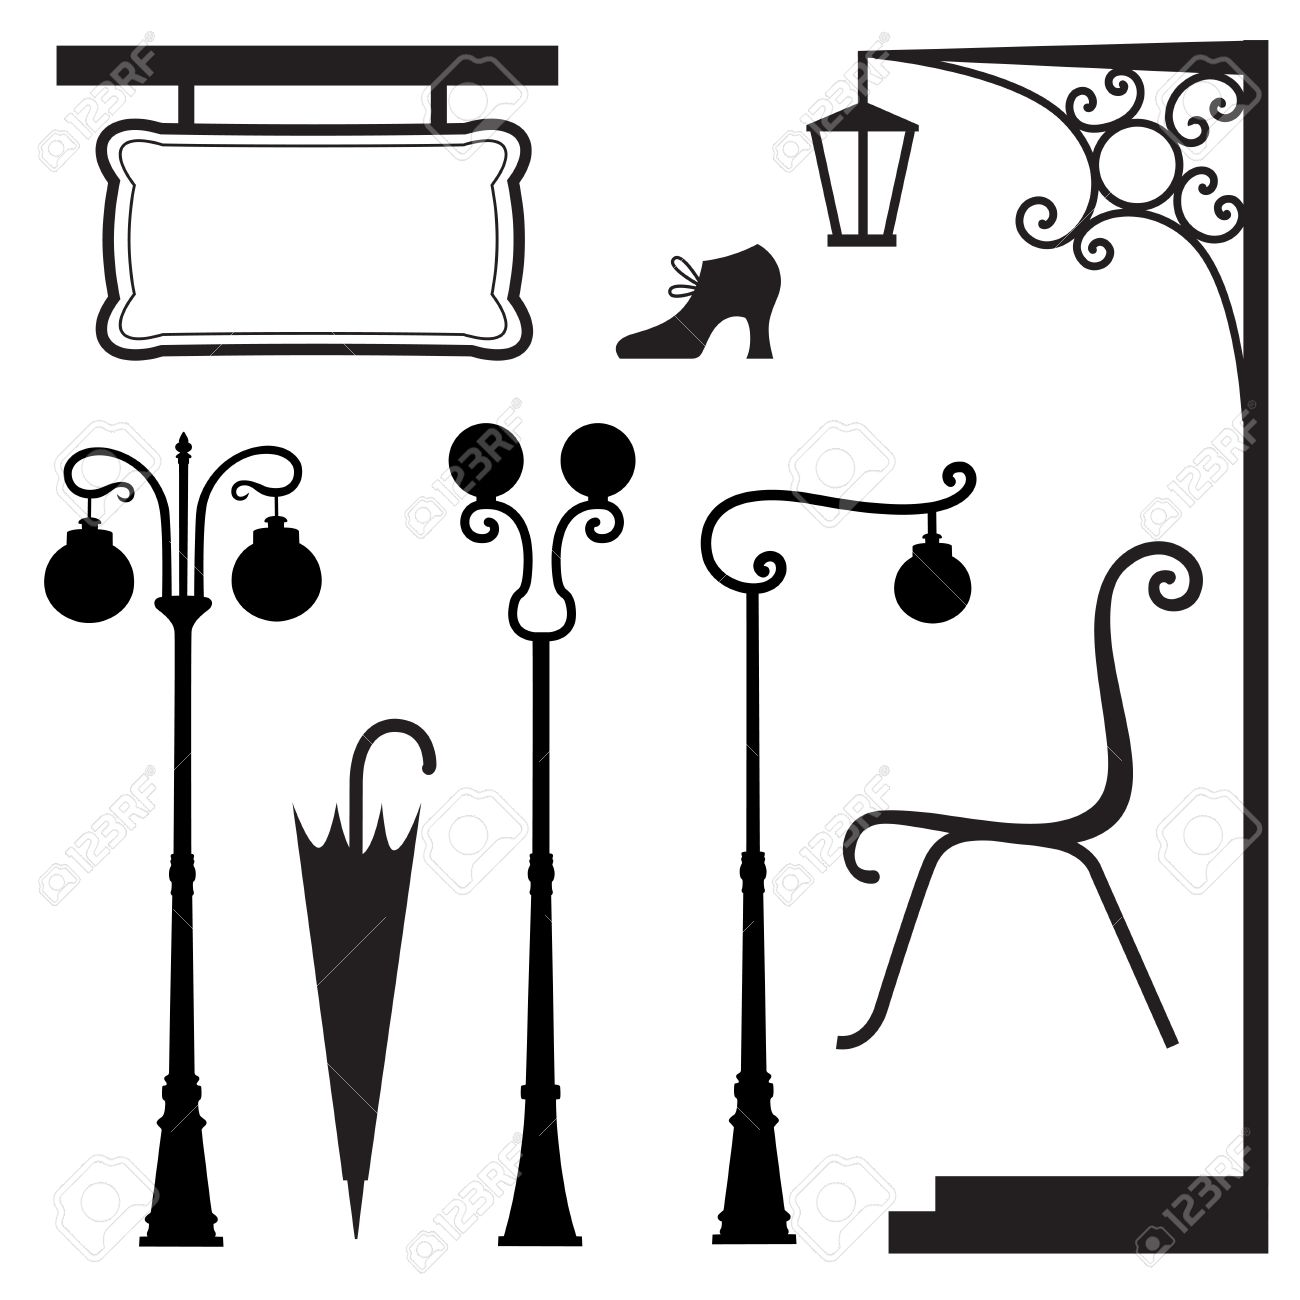 A Set Of Vintage Elements Royalty Free Cliparts Vectors And Stock